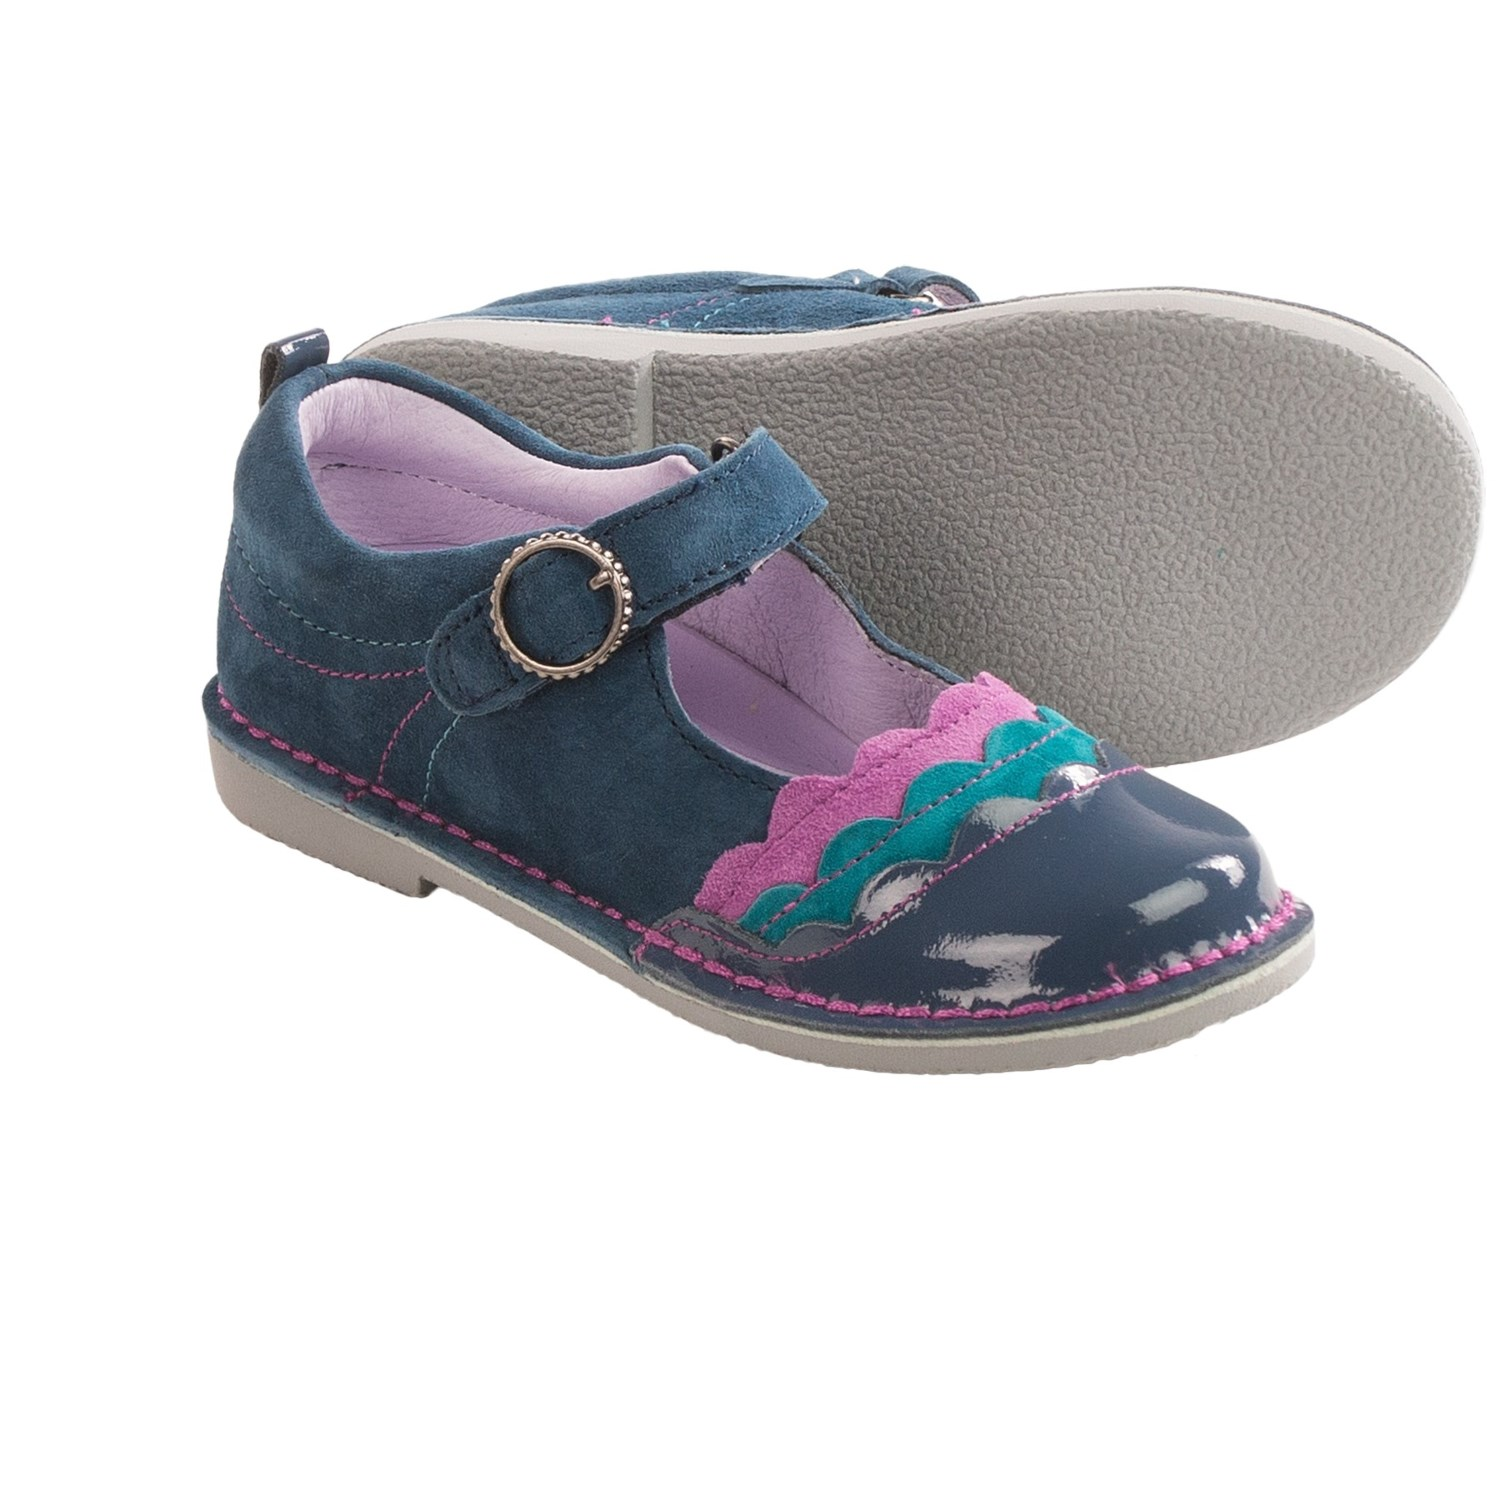 Stride Rite Slip On Shoes